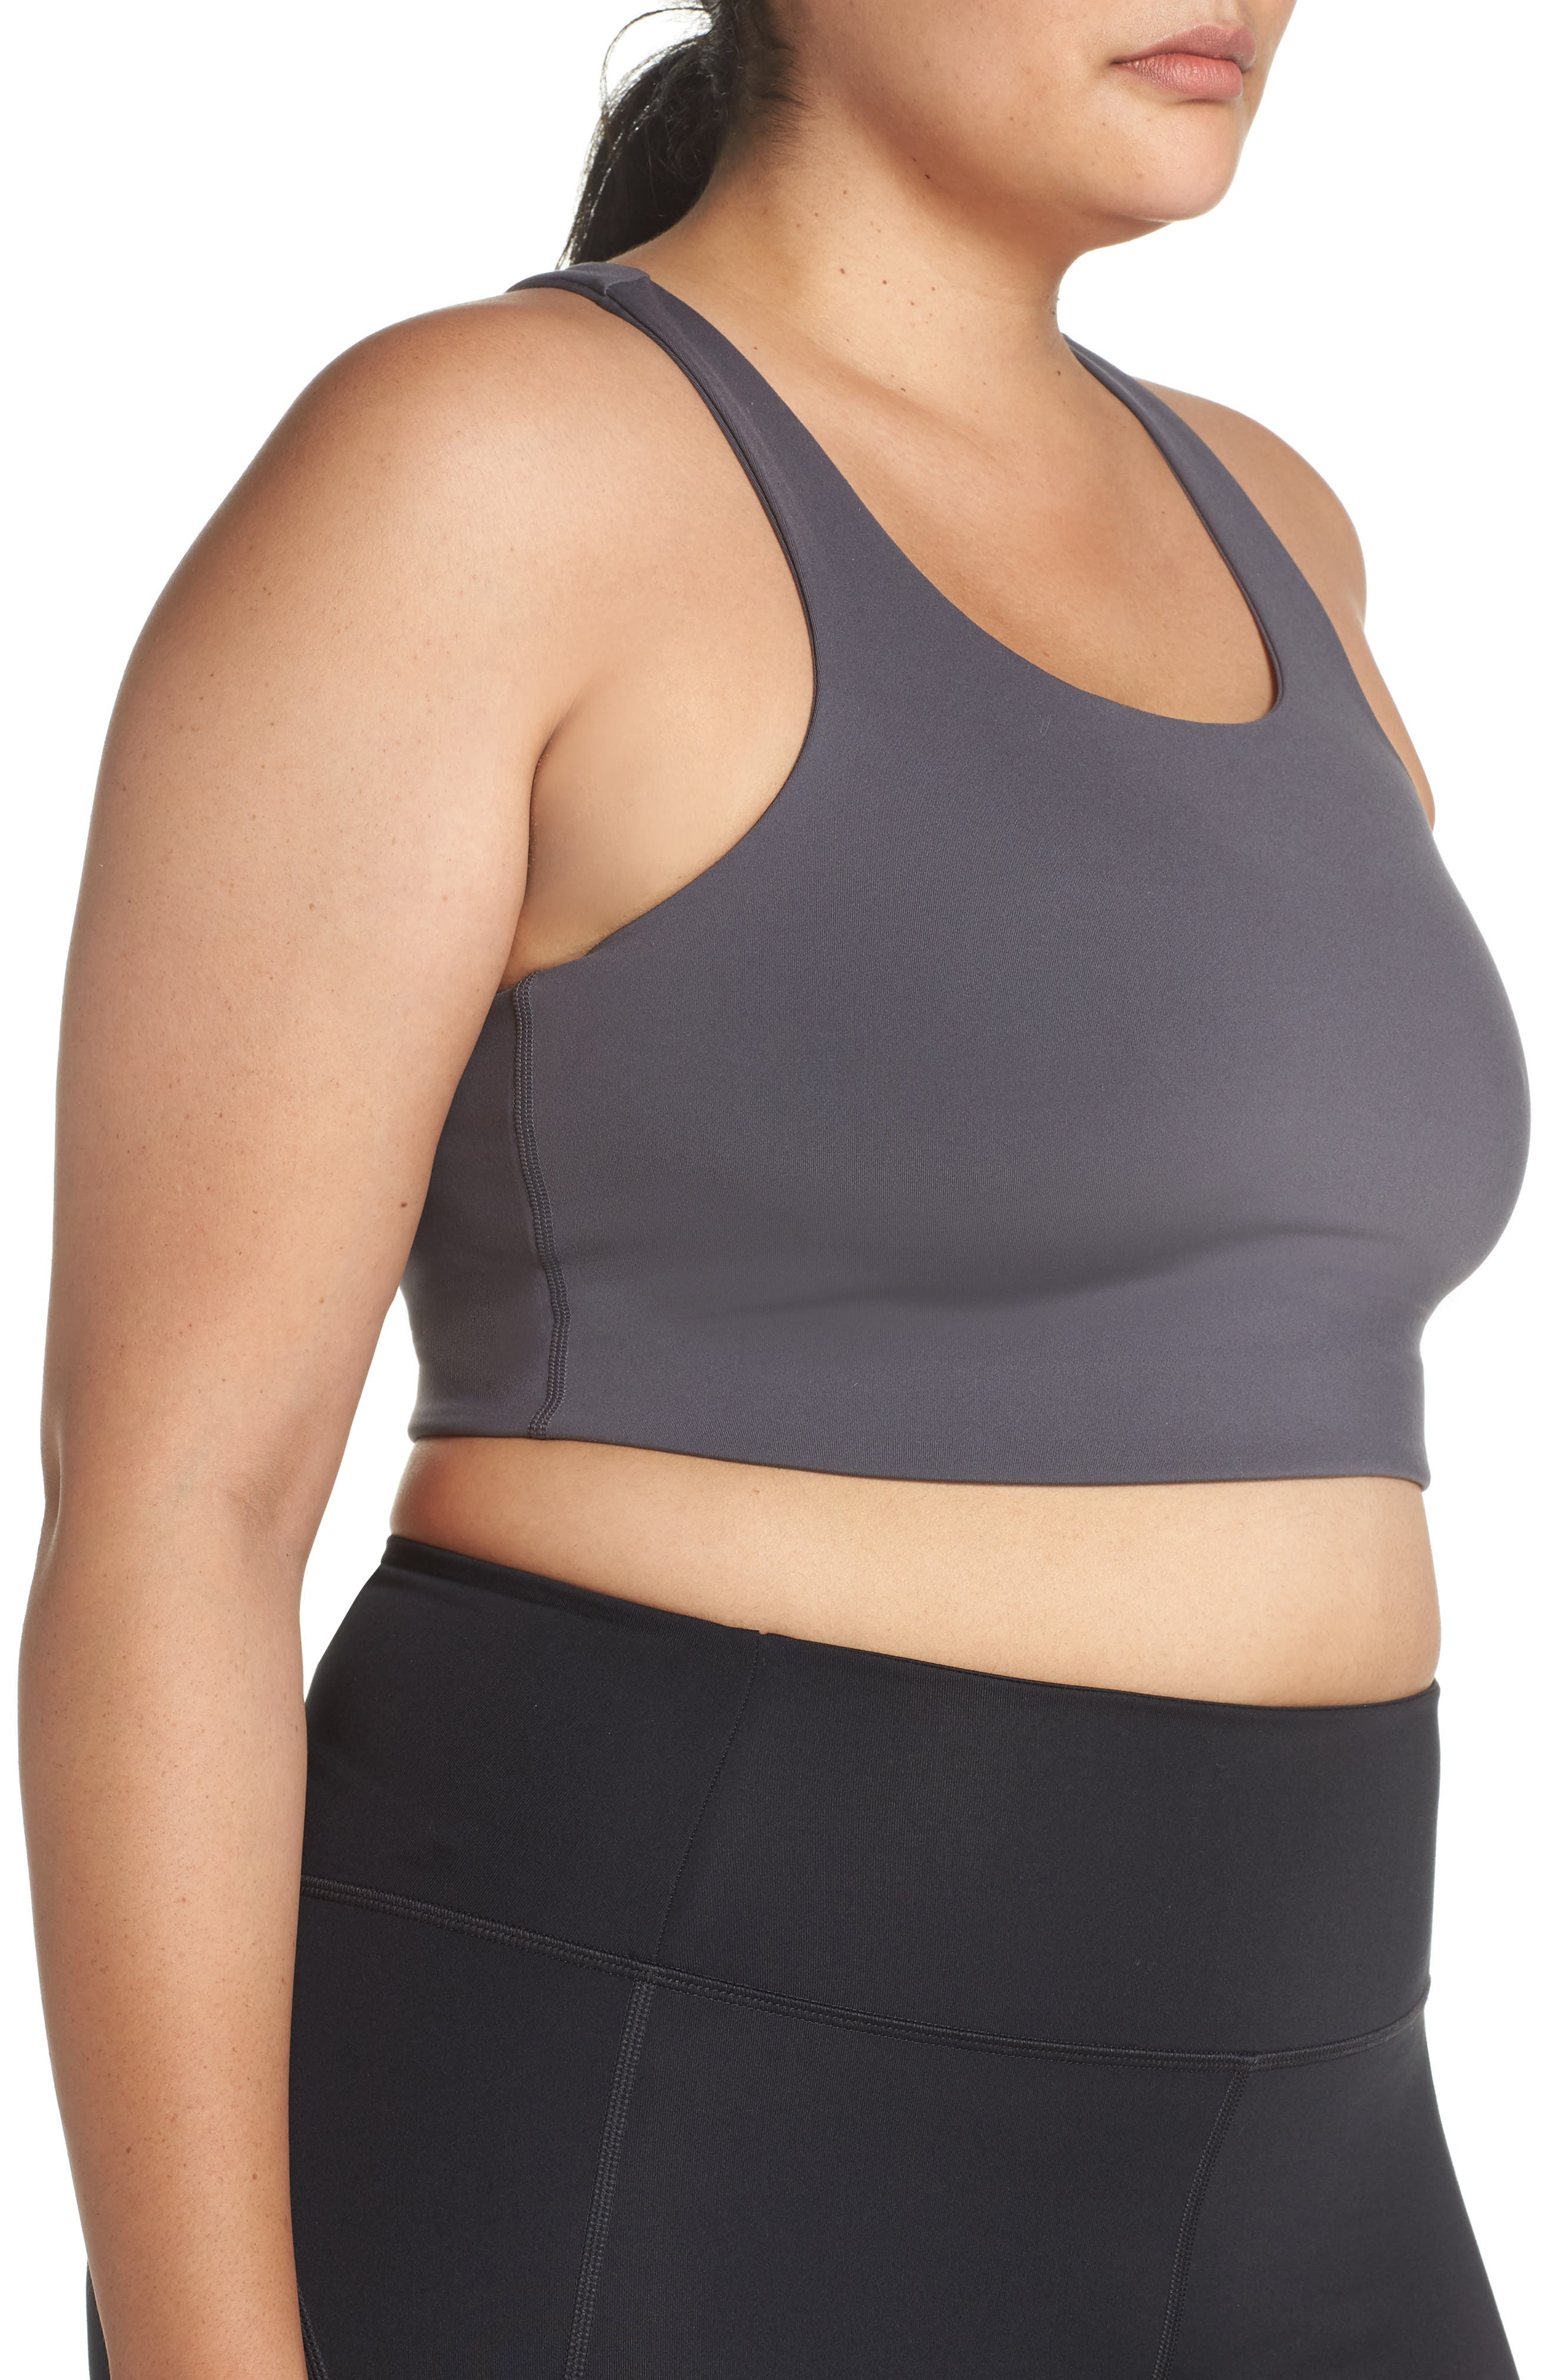 Paloma Sports Bra,                             Alternate thumbnail 13, color,                             SMOKE